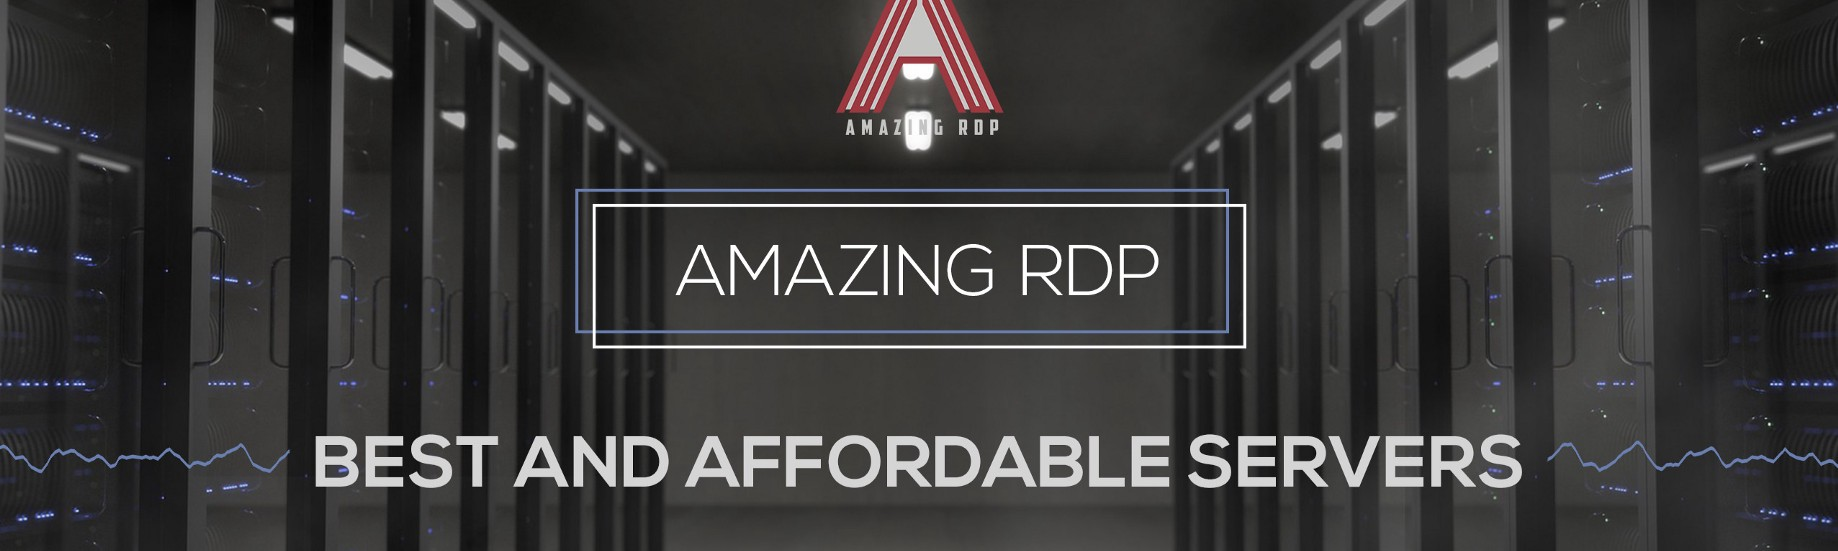 AmazingRDP Launches Shared Admin Plans - Amazingrdp - Medium